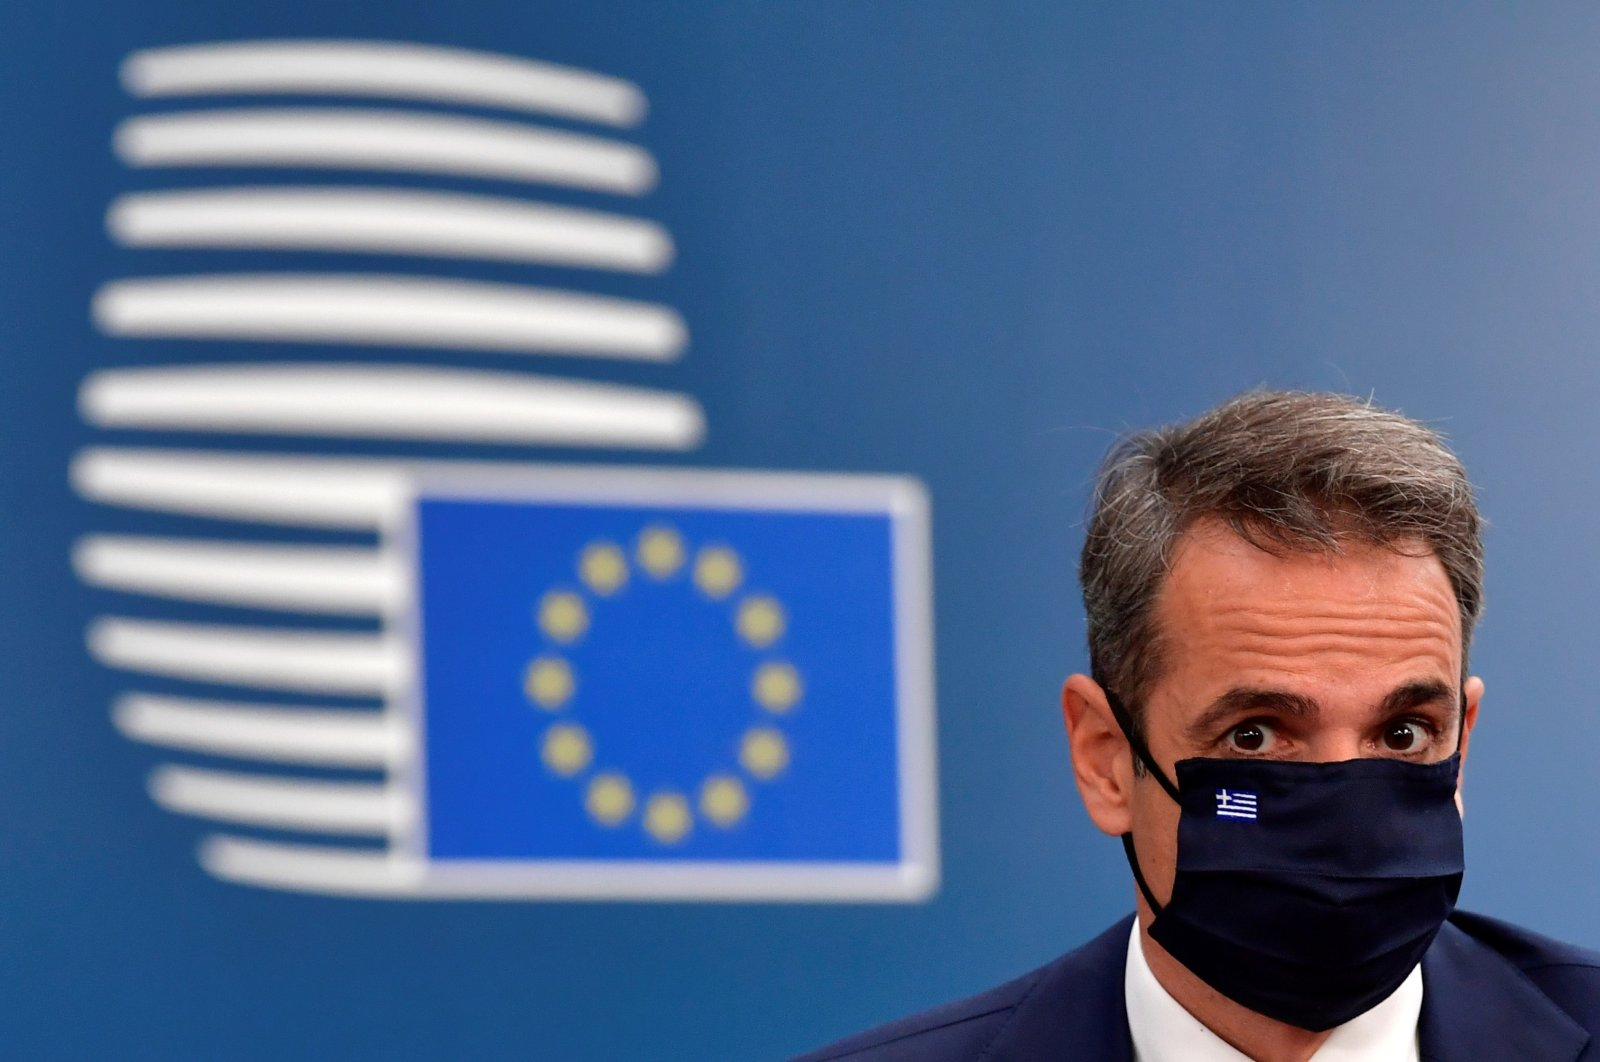 Greece's Prime Minister Kyriakos Mitsotakis arrives for the first face-to-face EU summit since the coronavirus disease (COVID-19) outbreak, in Brussels, Belgium July 19, 2020. (Reuters File Photo)